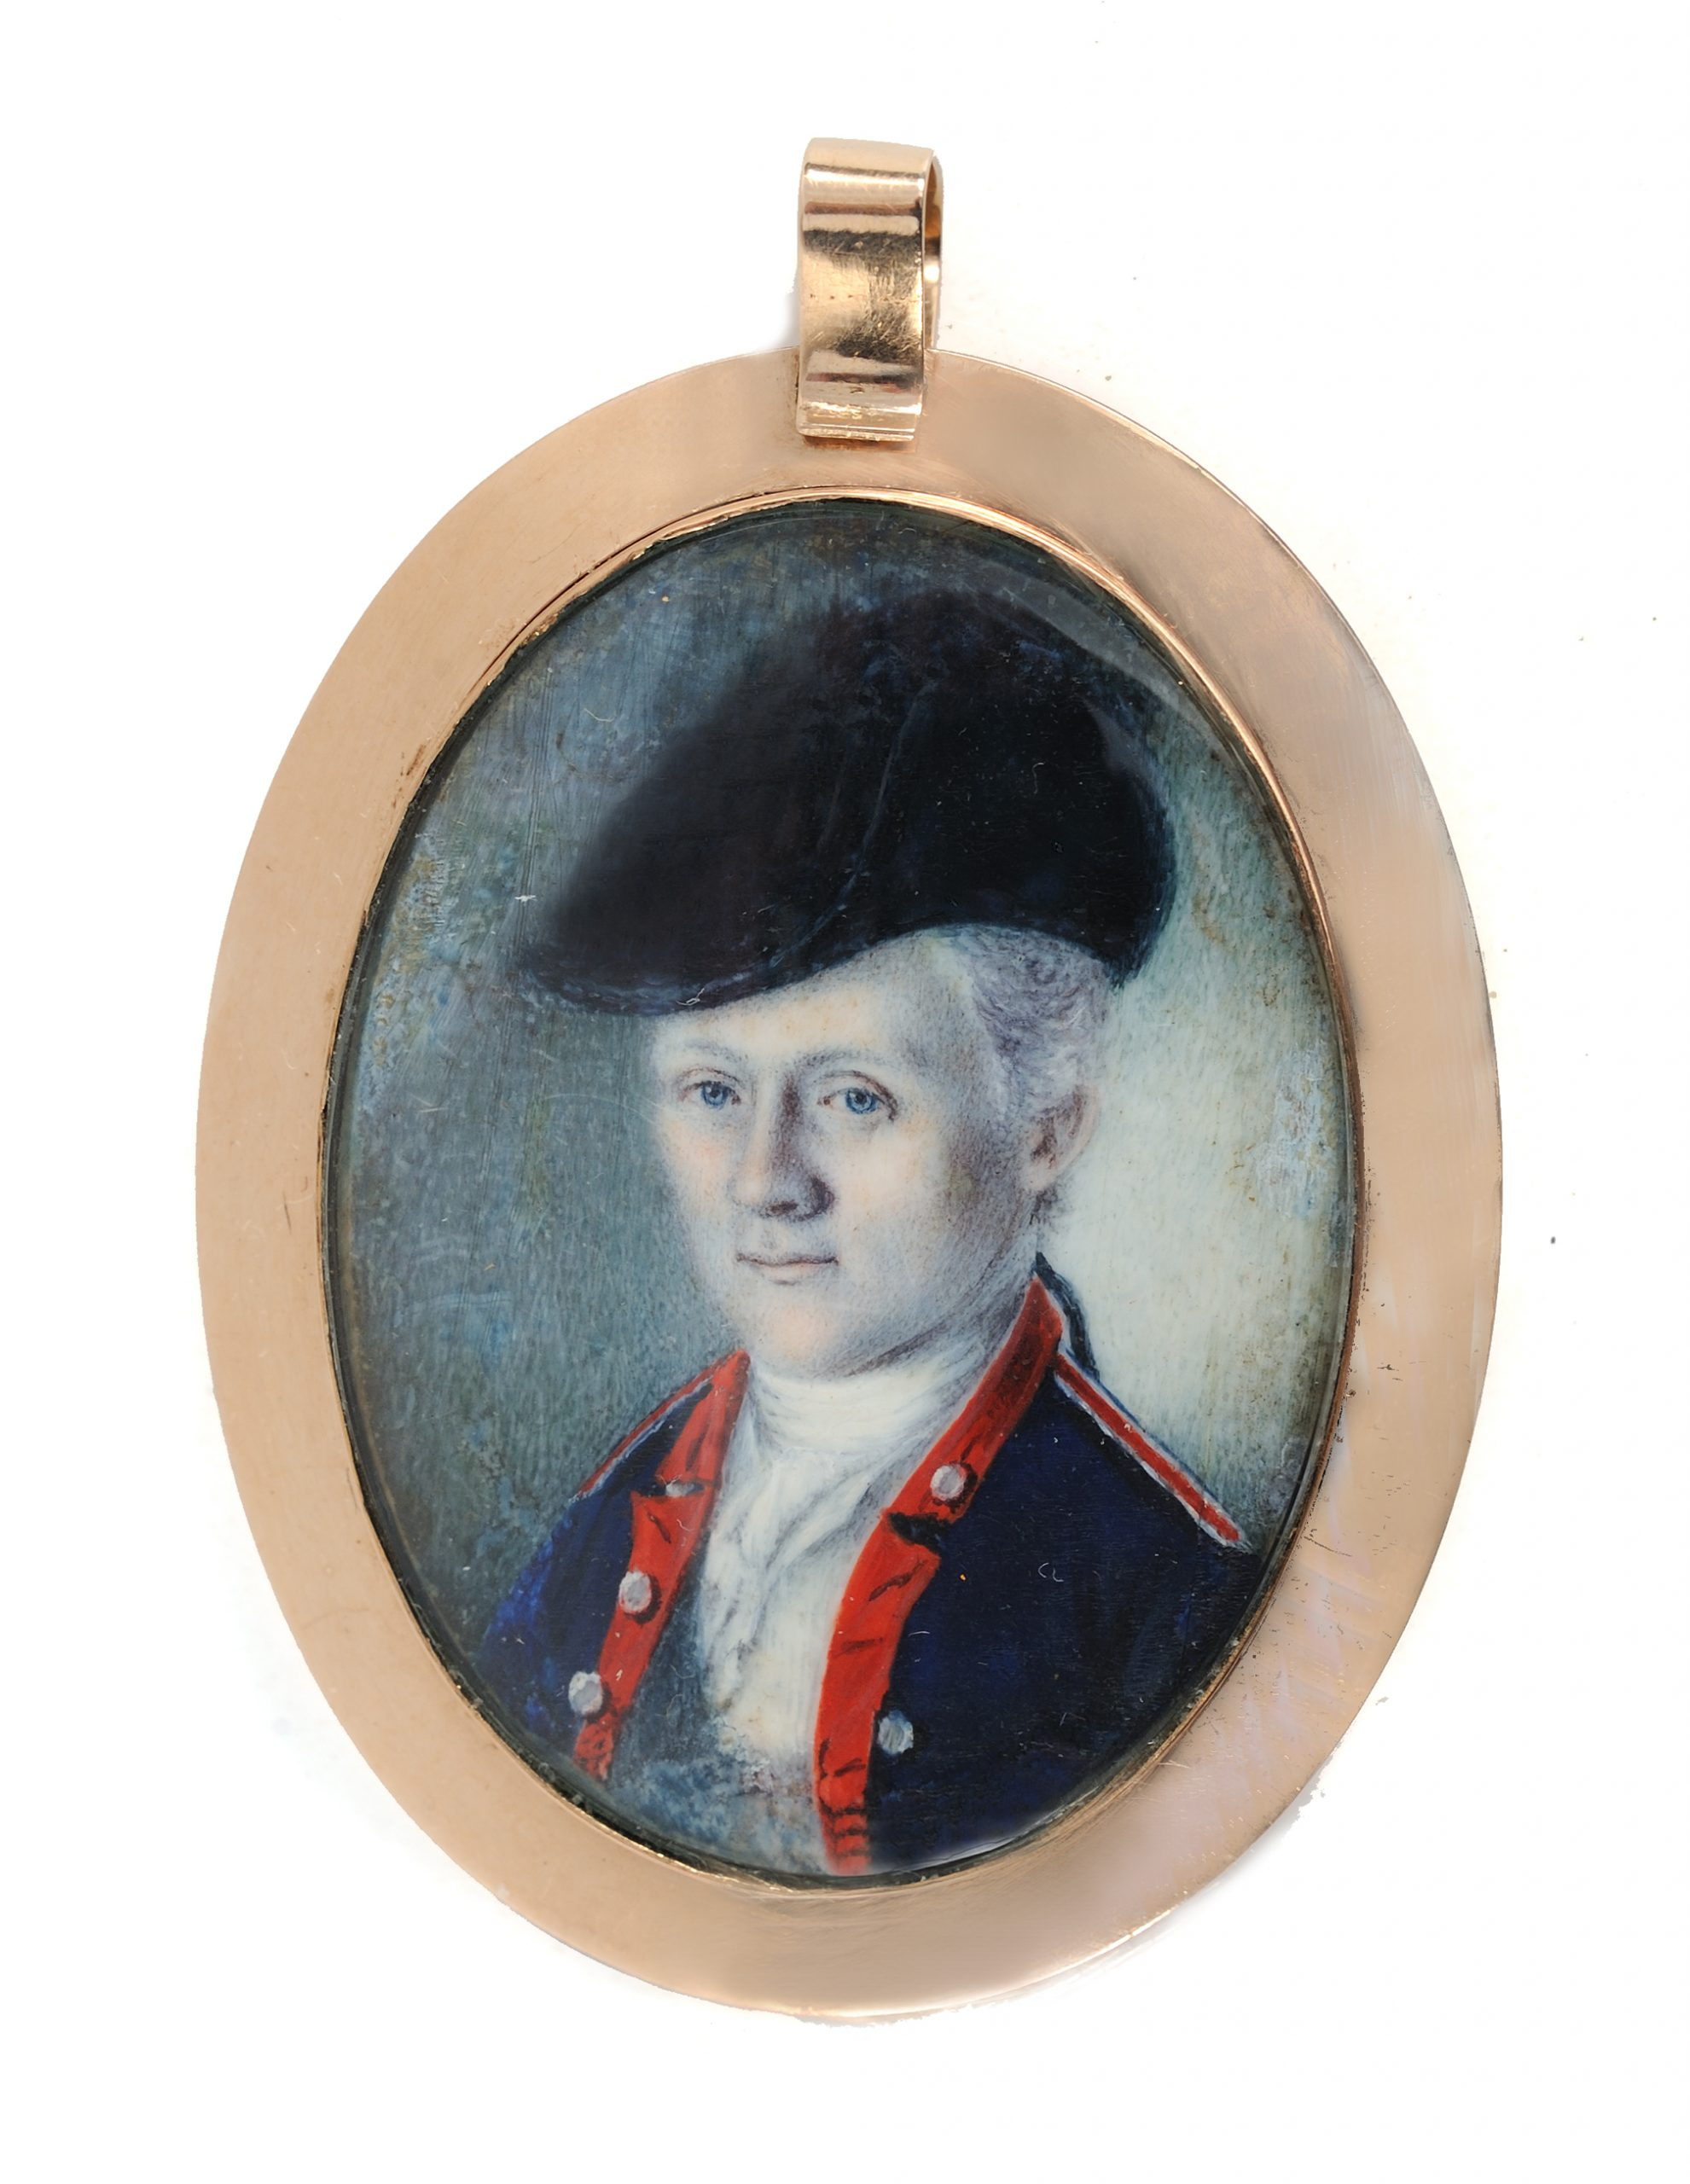 Oval portrait miniature of Revolutionary War officer William Truman Stoddert painted by Charles Willson Peale, ca. 1778